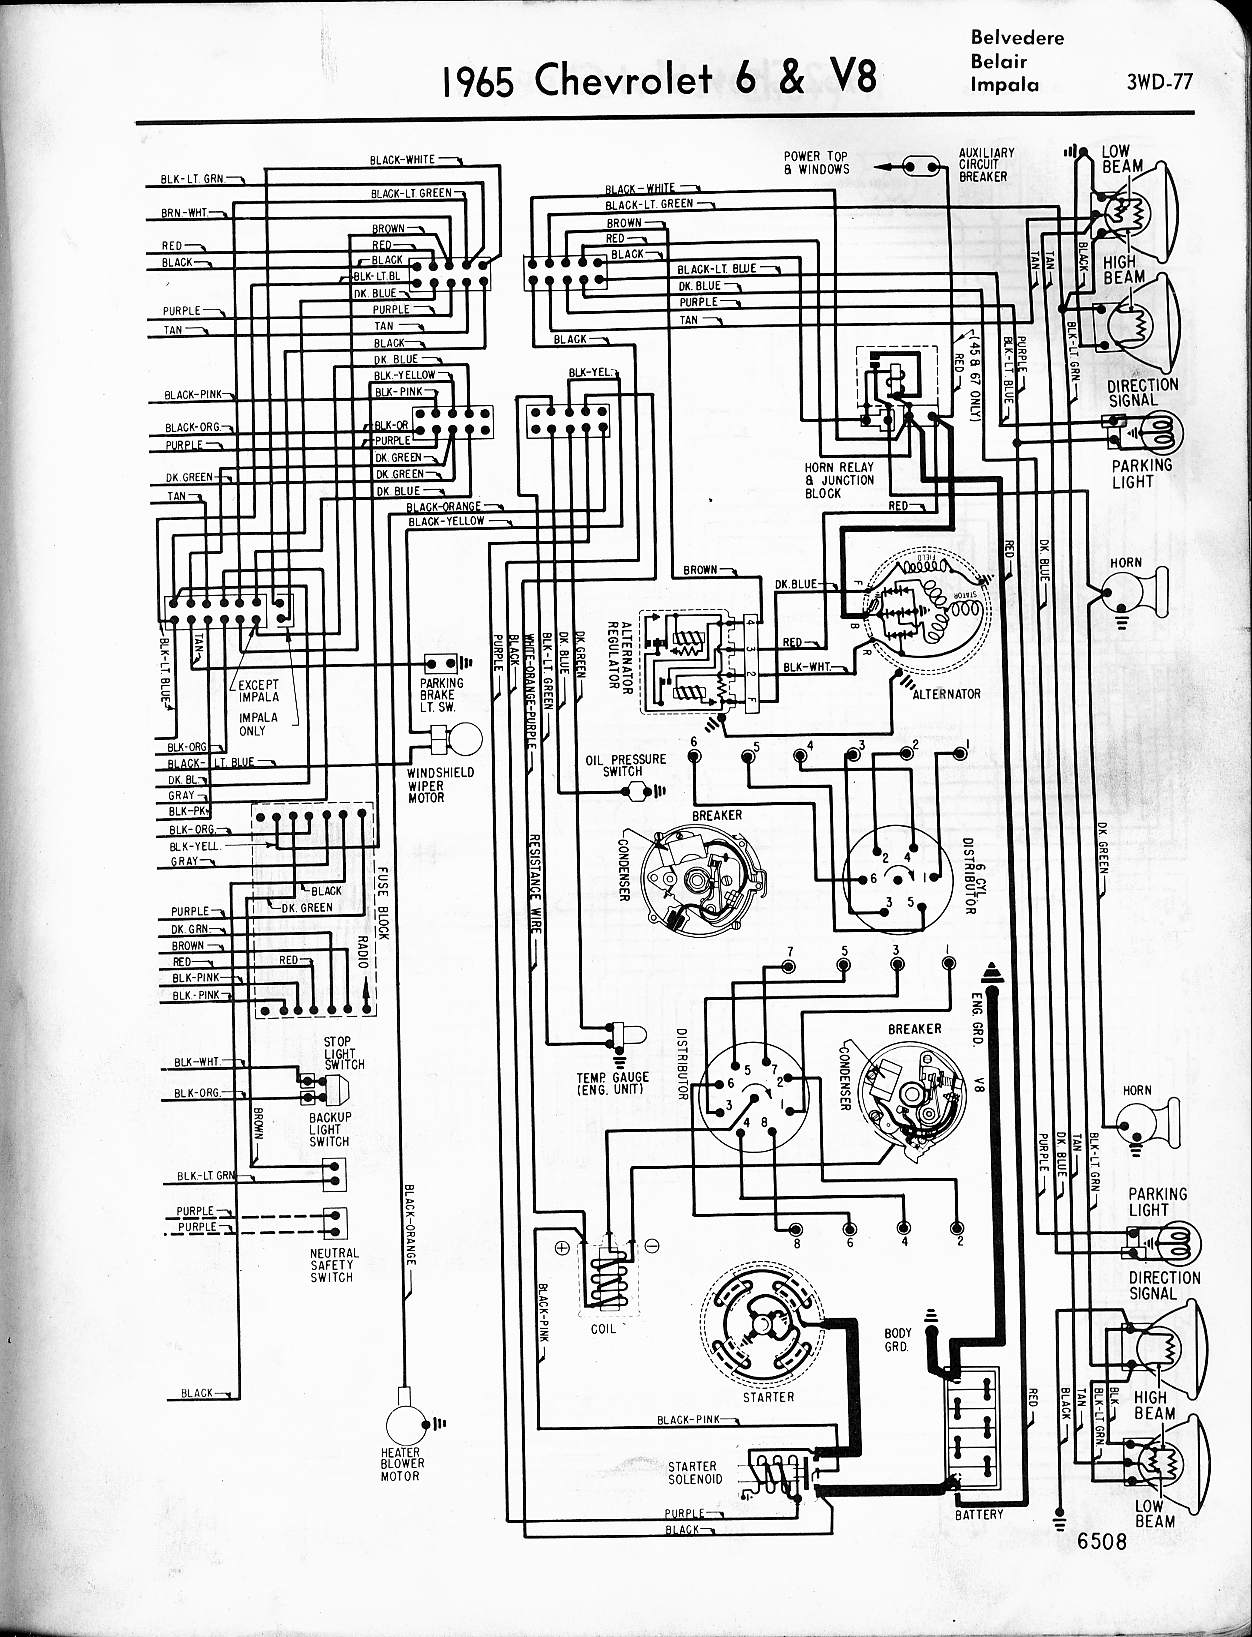 Chevy Diagrams Wiring Harness Alternator 1965 Impalla Diagram Figure A B